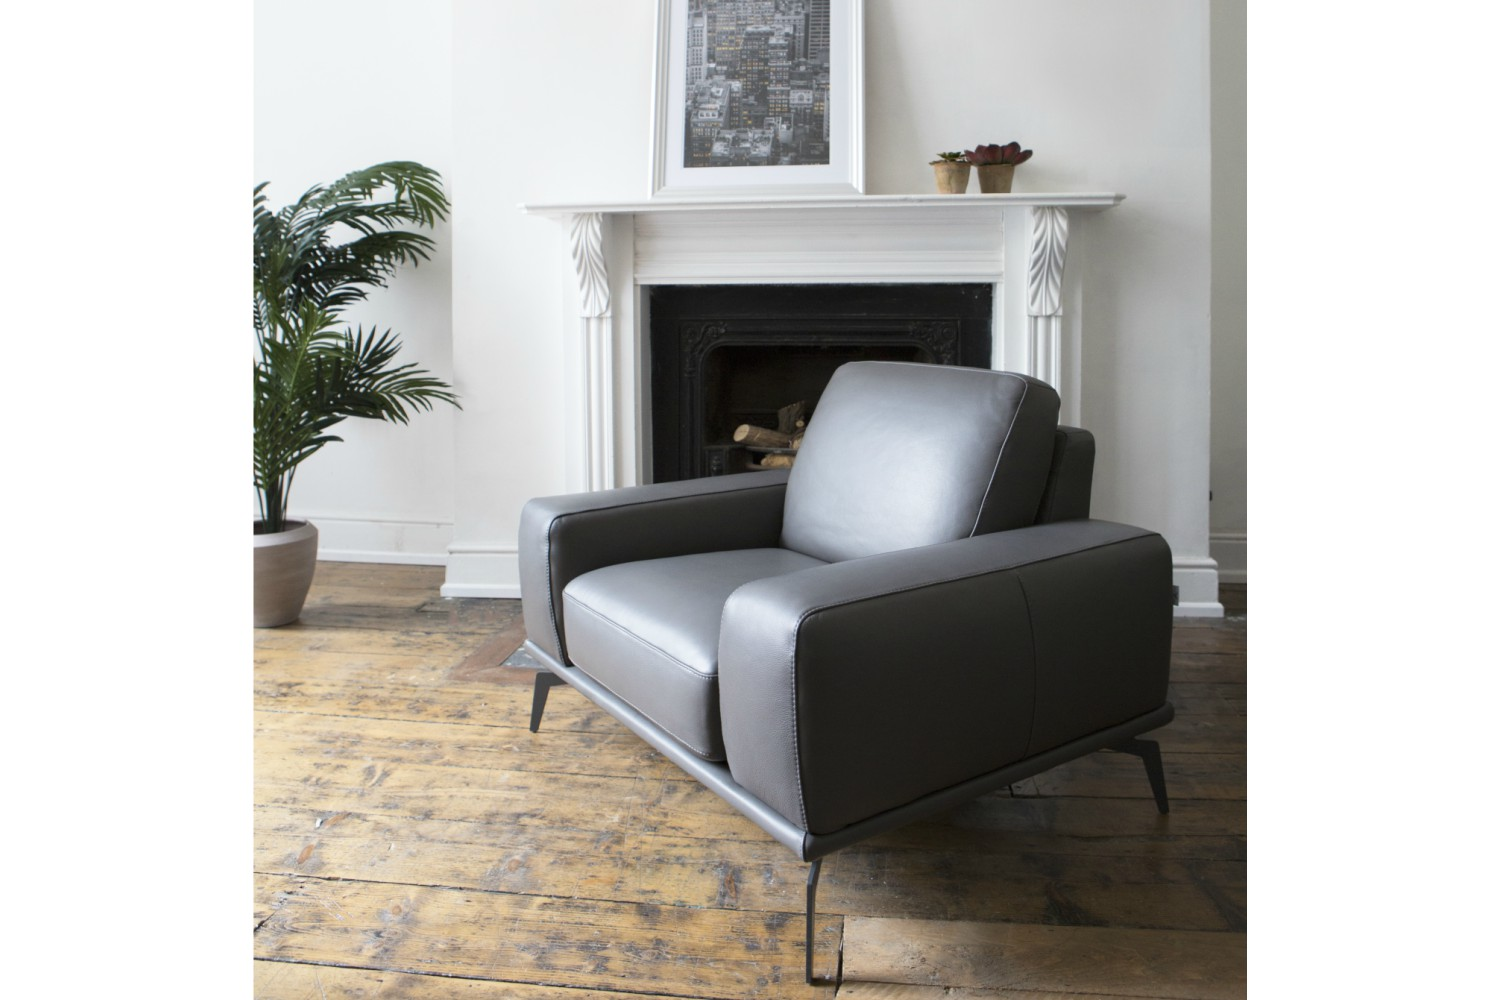 cloud track arm leather sofa cheap shops near me sofas | ireland's superstore ireland